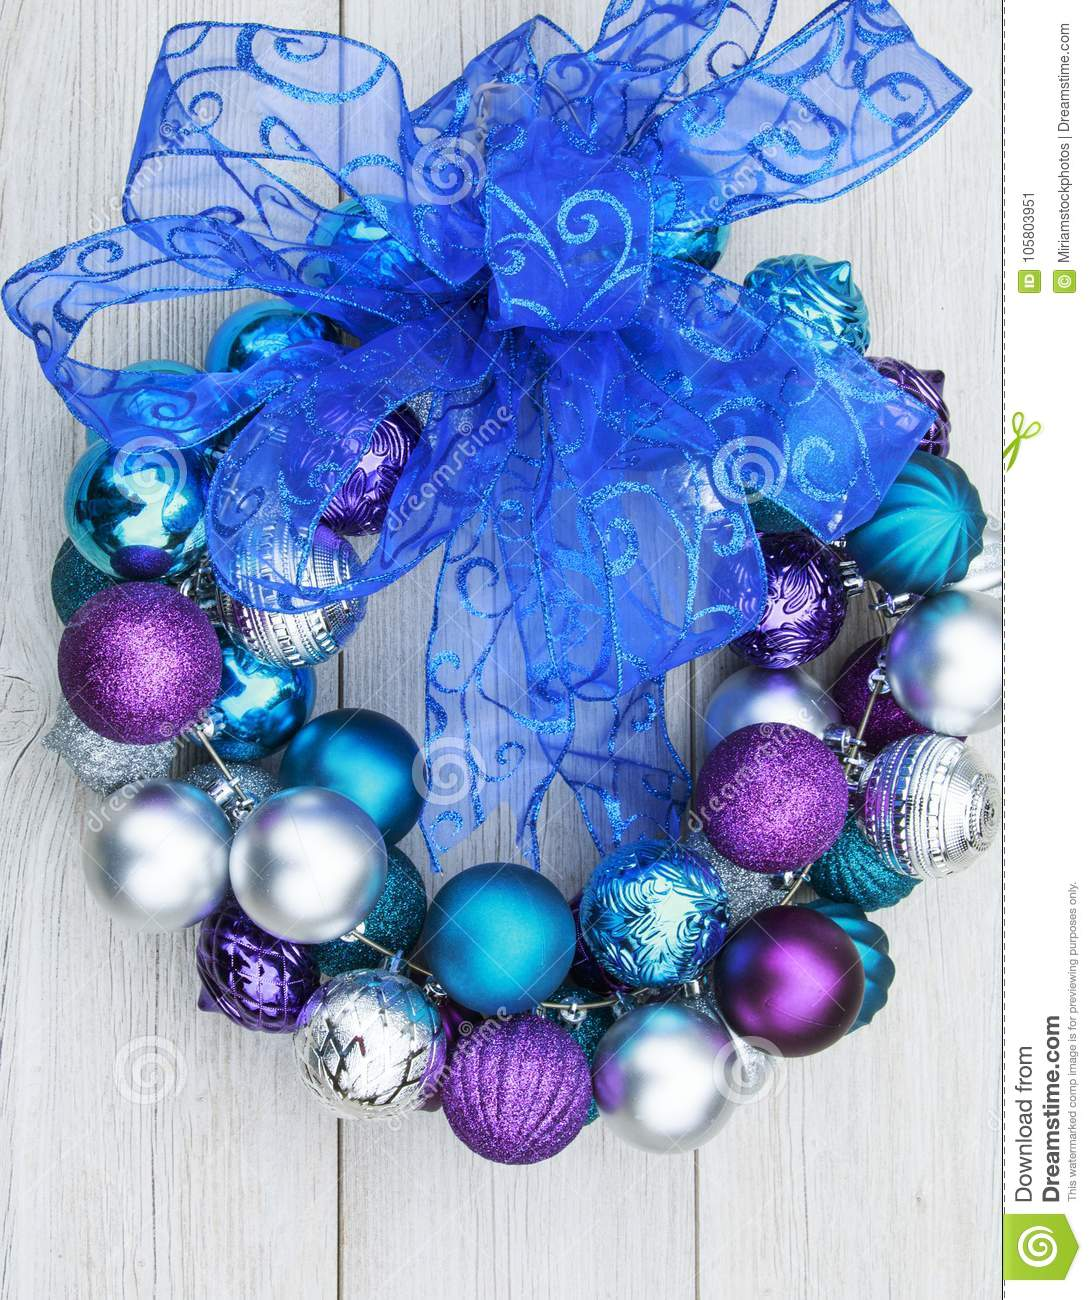 Purple, Blue, And Silver Christmas Ball Ornaments On A